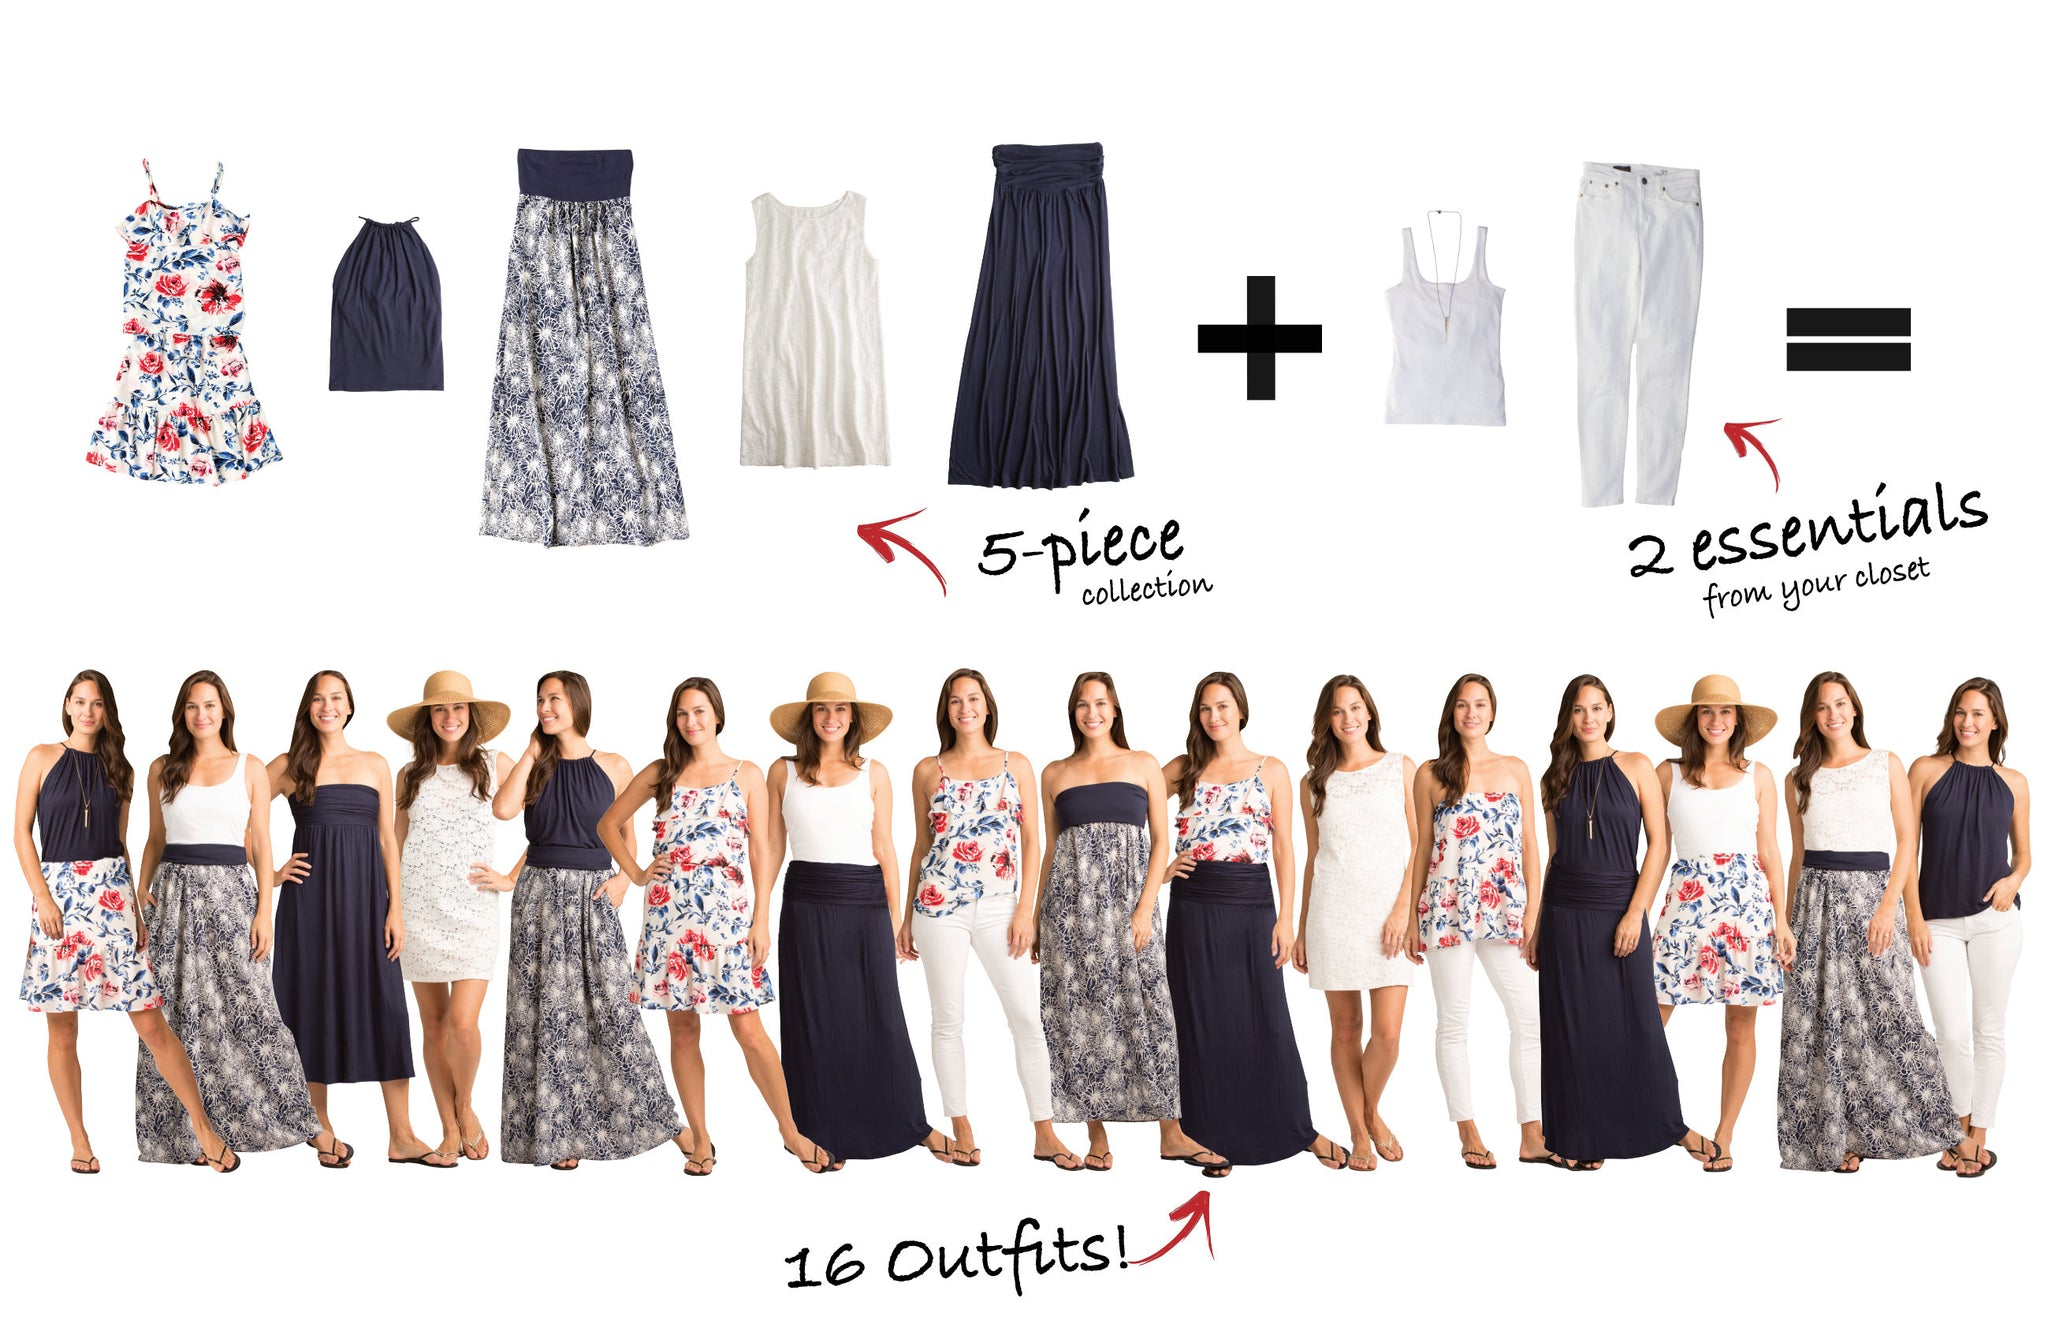 Vacay Sonoma Collection: 5 items = 16 outfits